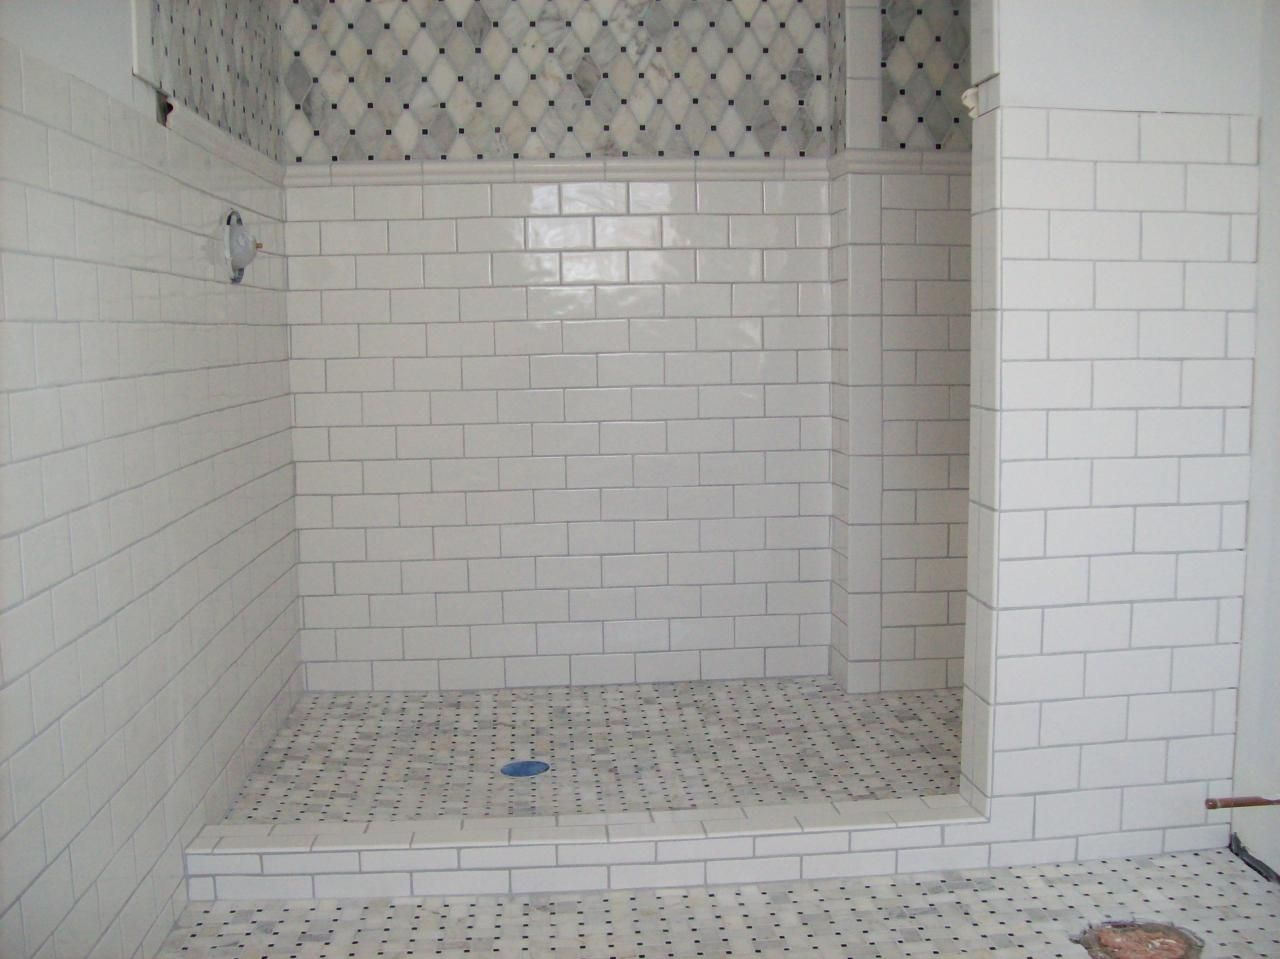 Subway Tiles With A Touch Of Color Love The Shelf Description From Pinterest Com I S White Subway Tile Shower Subway Tile Showers White Subway Tile Bathroom